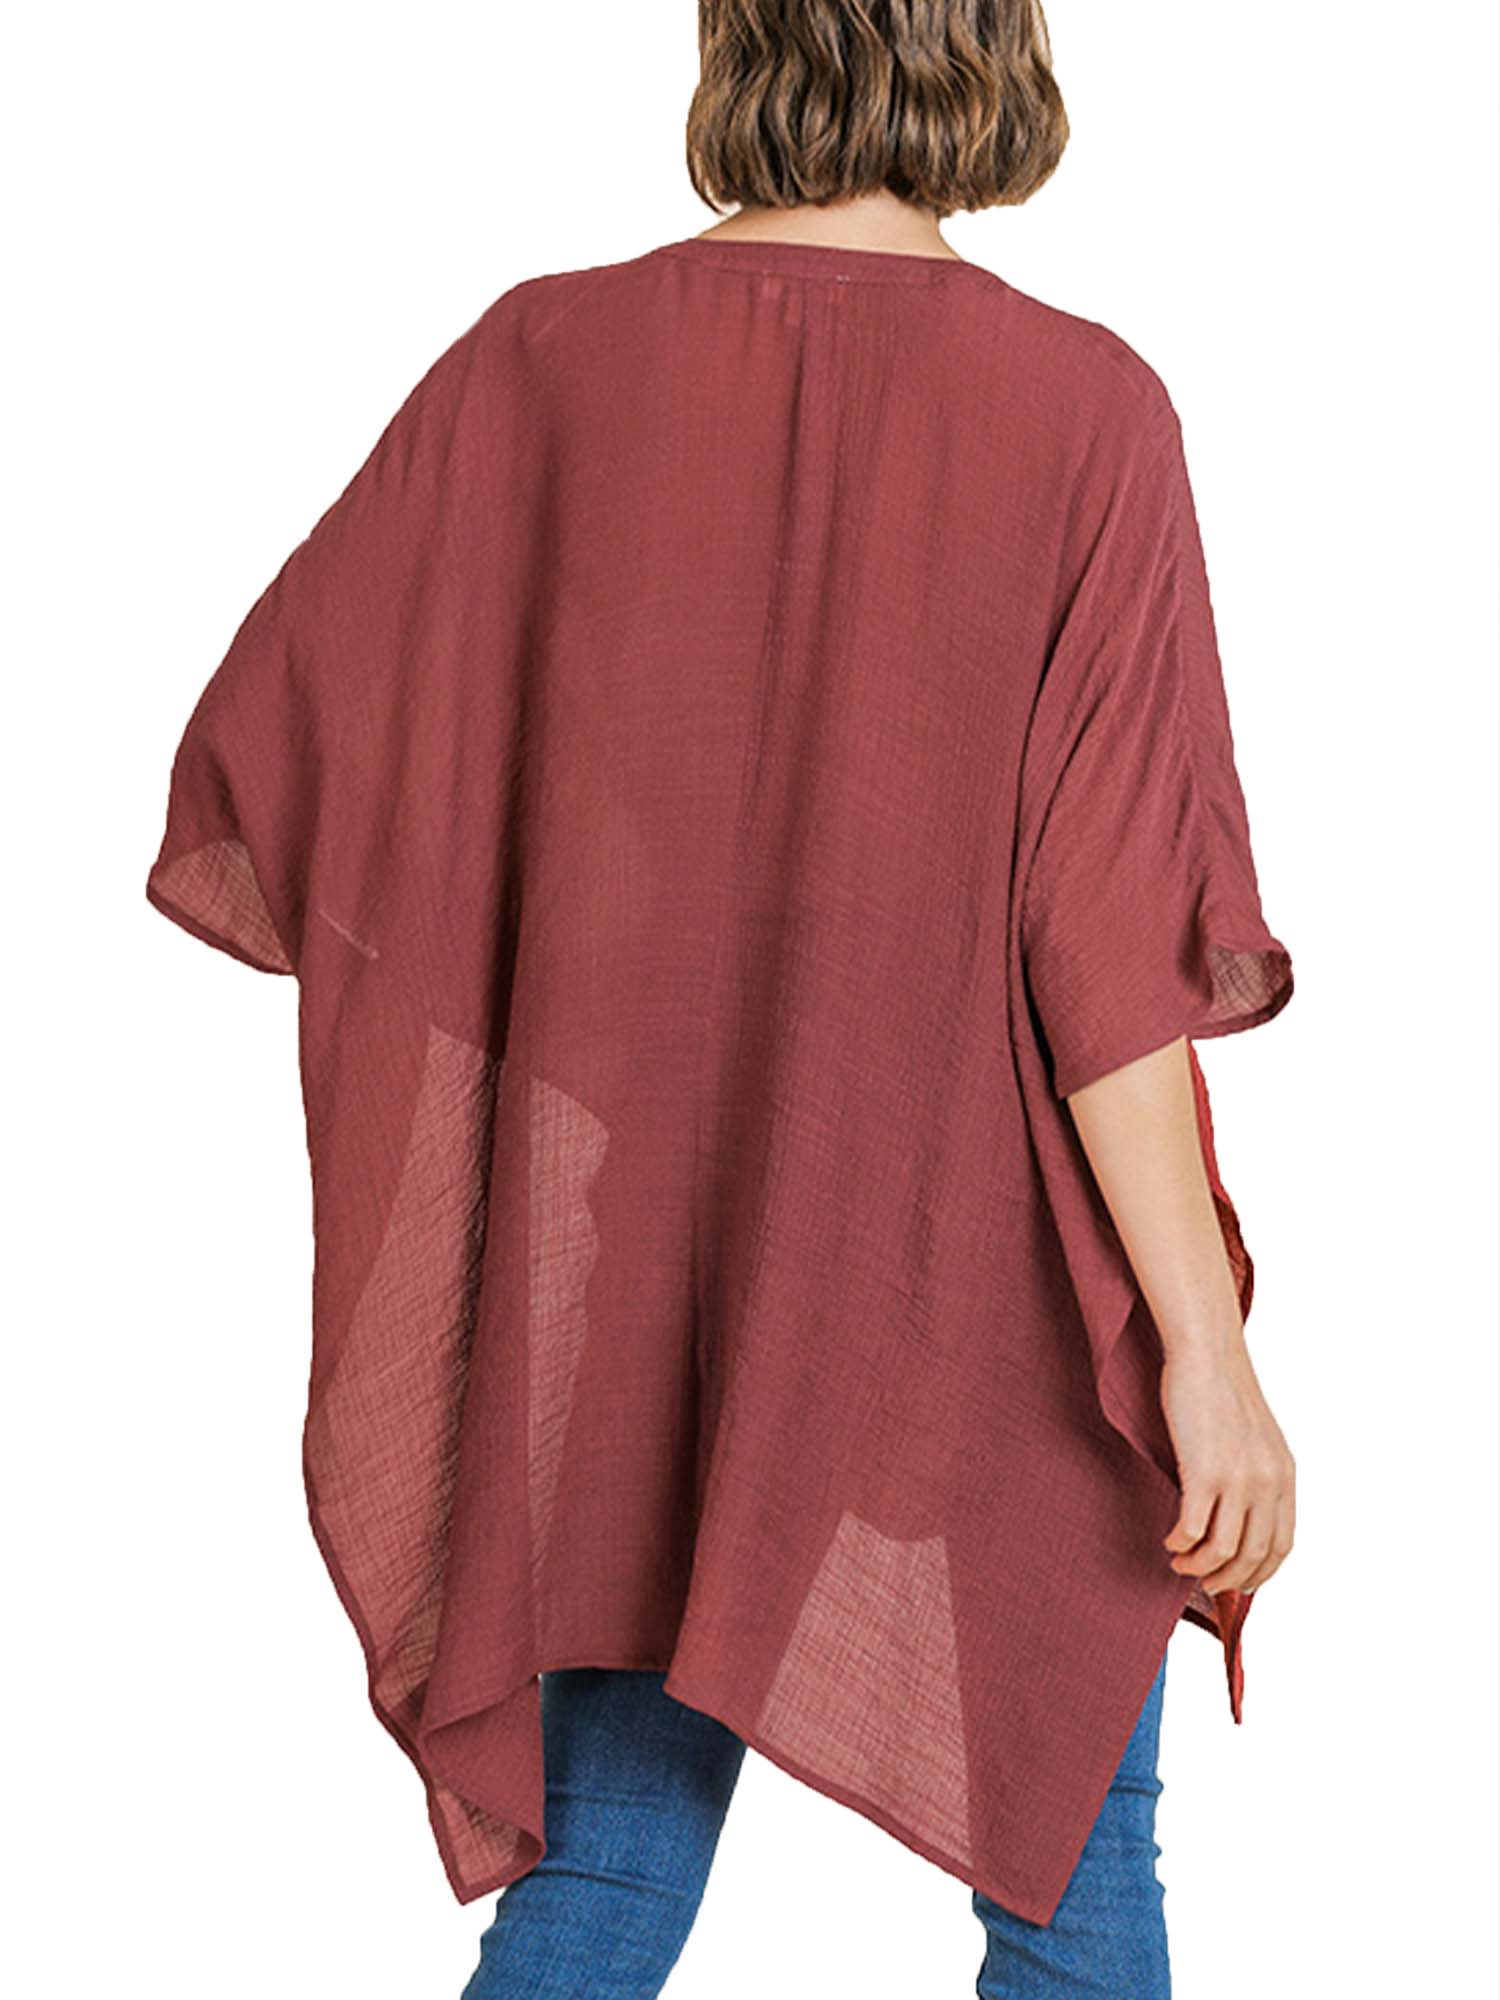 Marsala Floral Embroidered V-Neck Kaftan with Side Slits